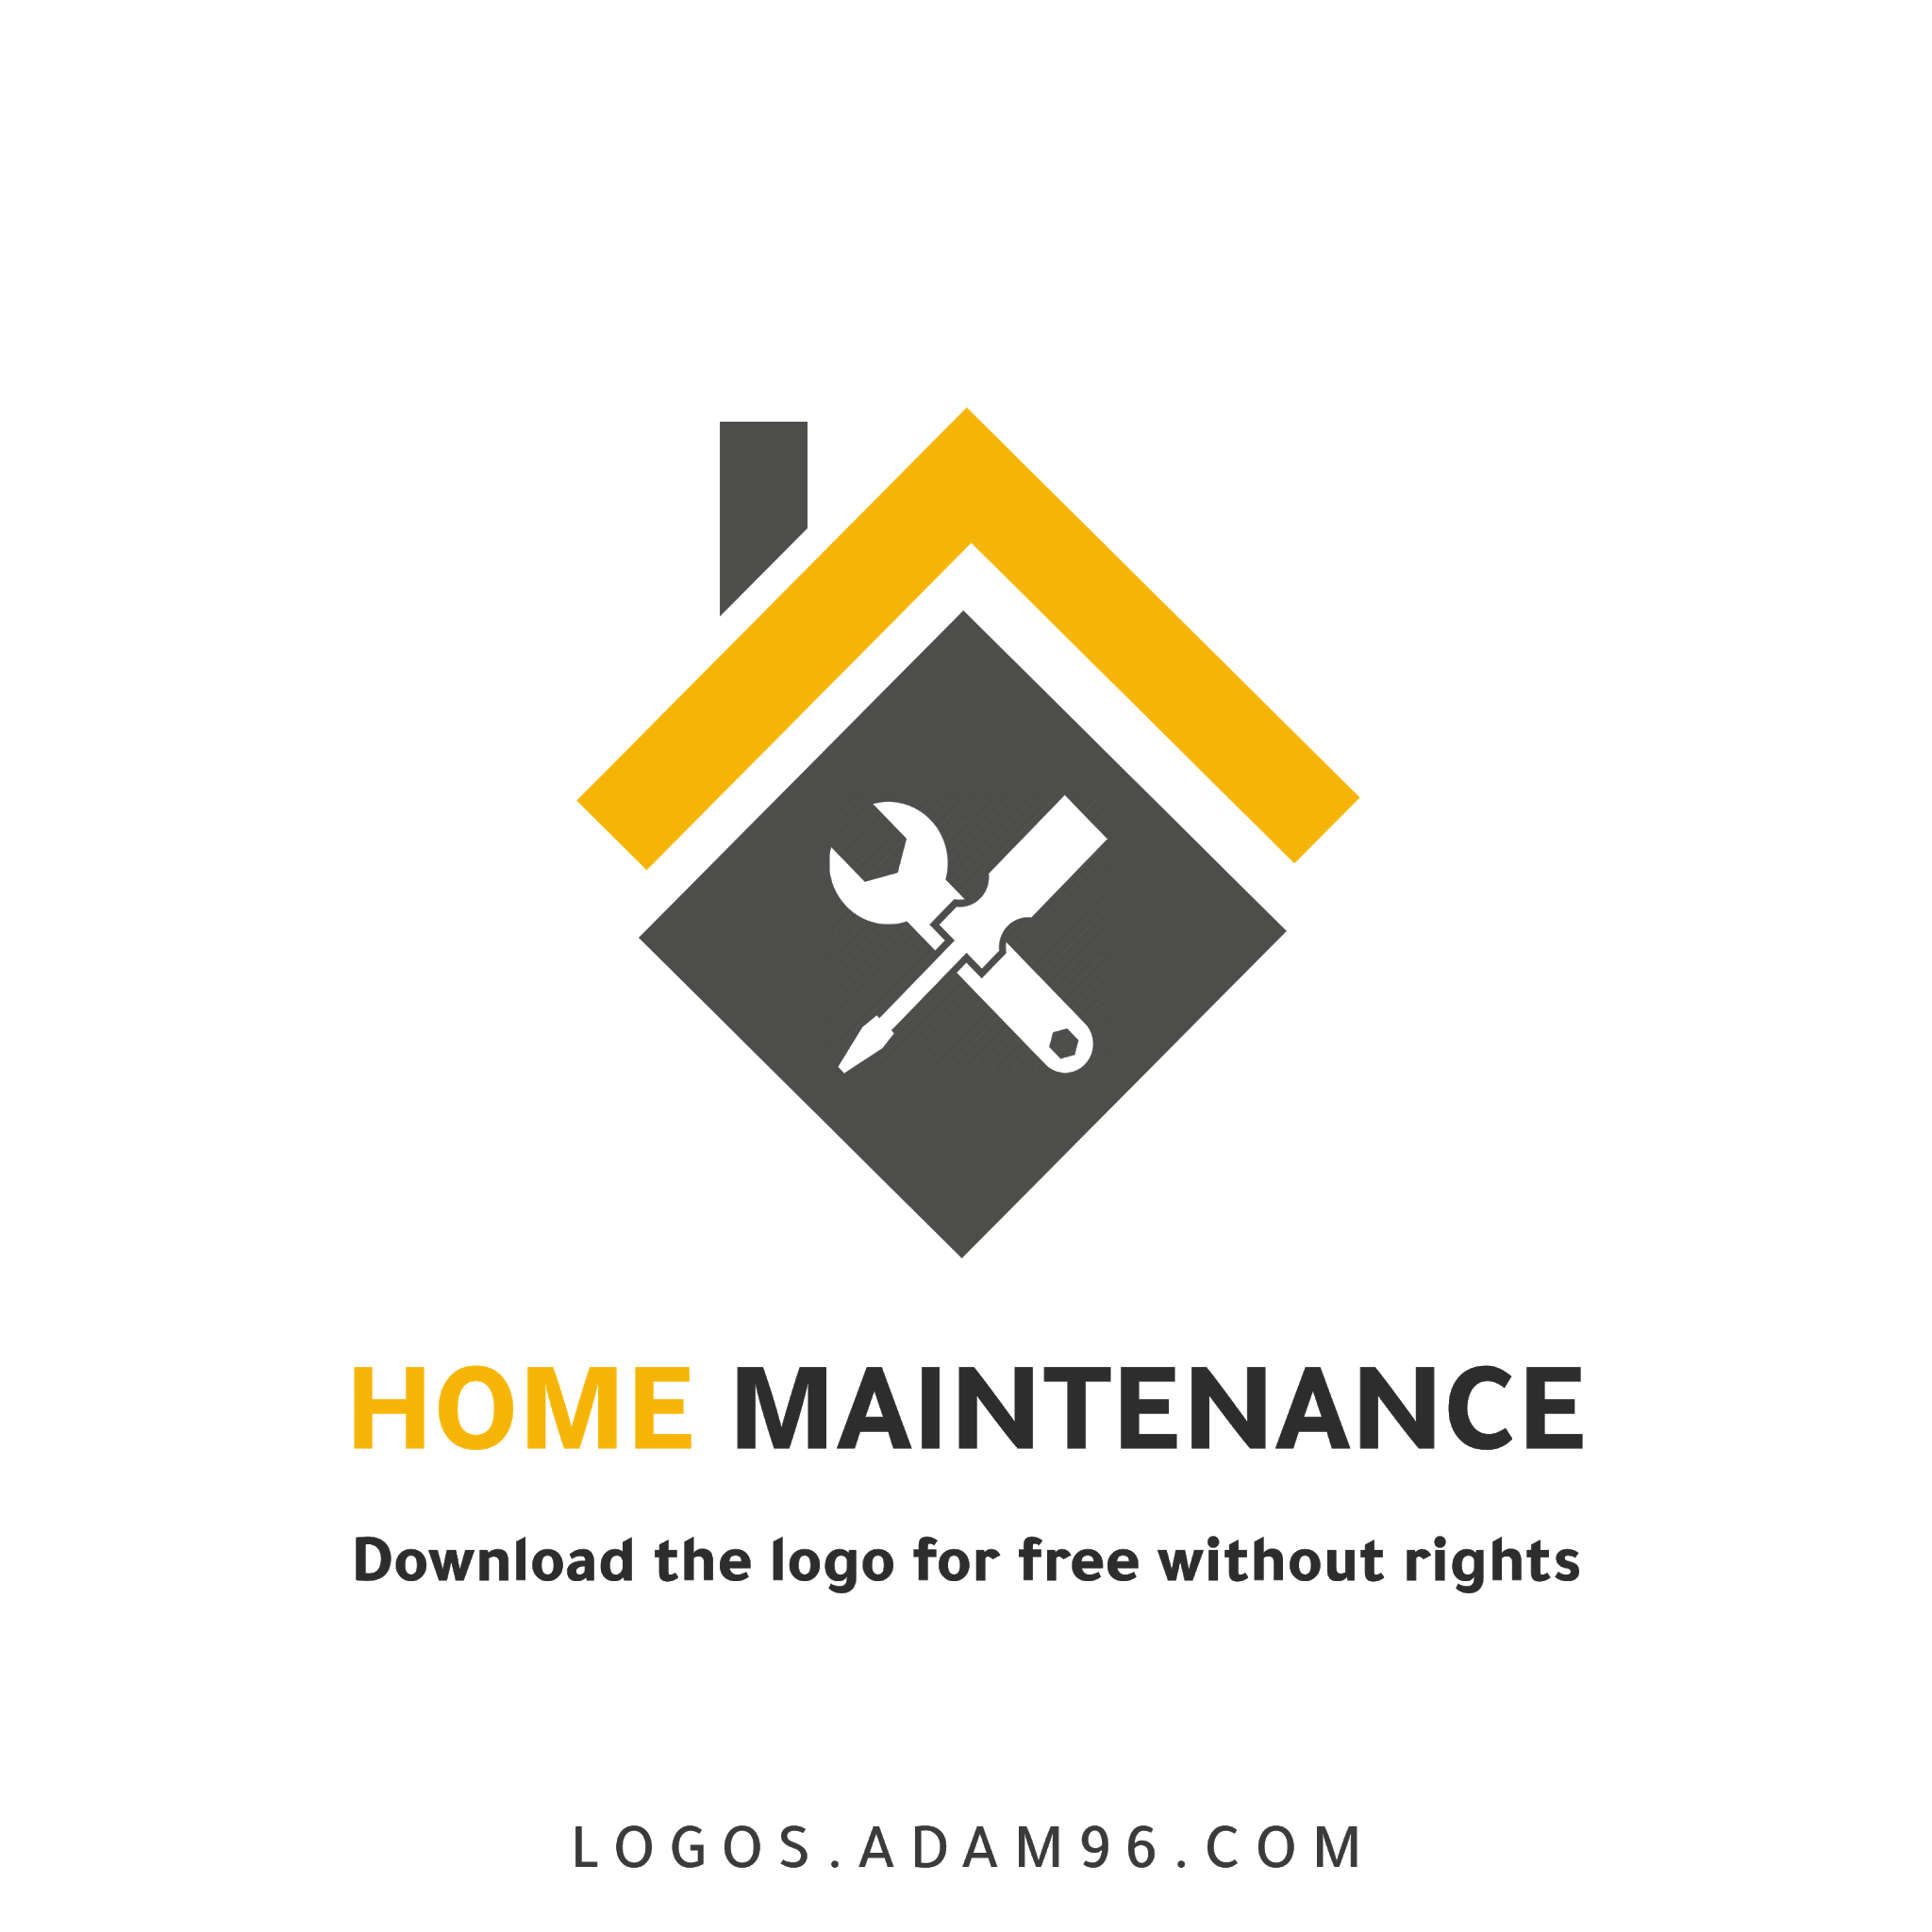 Download logo Home maintenance the for free without rights